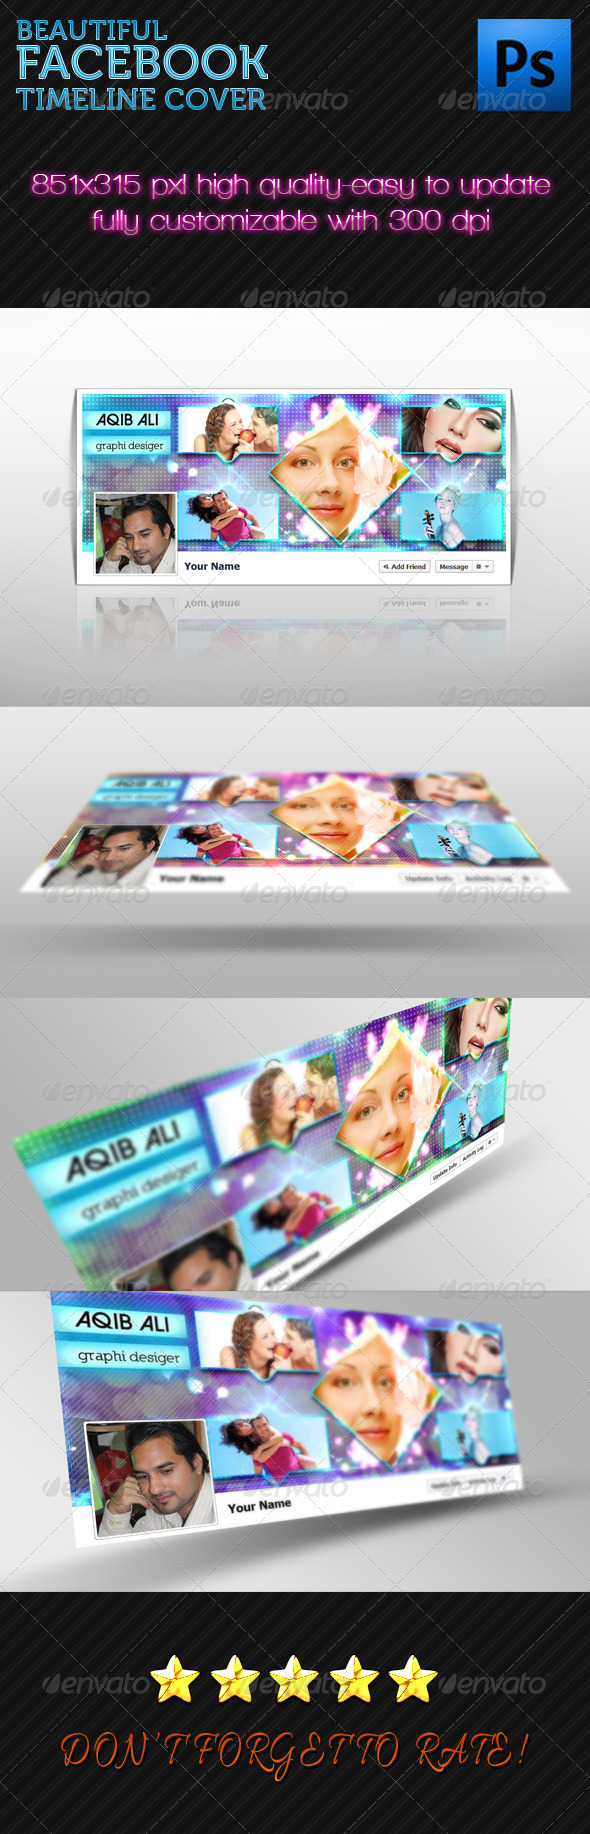 GraphicRiver Facebook Timeline 05 6530788